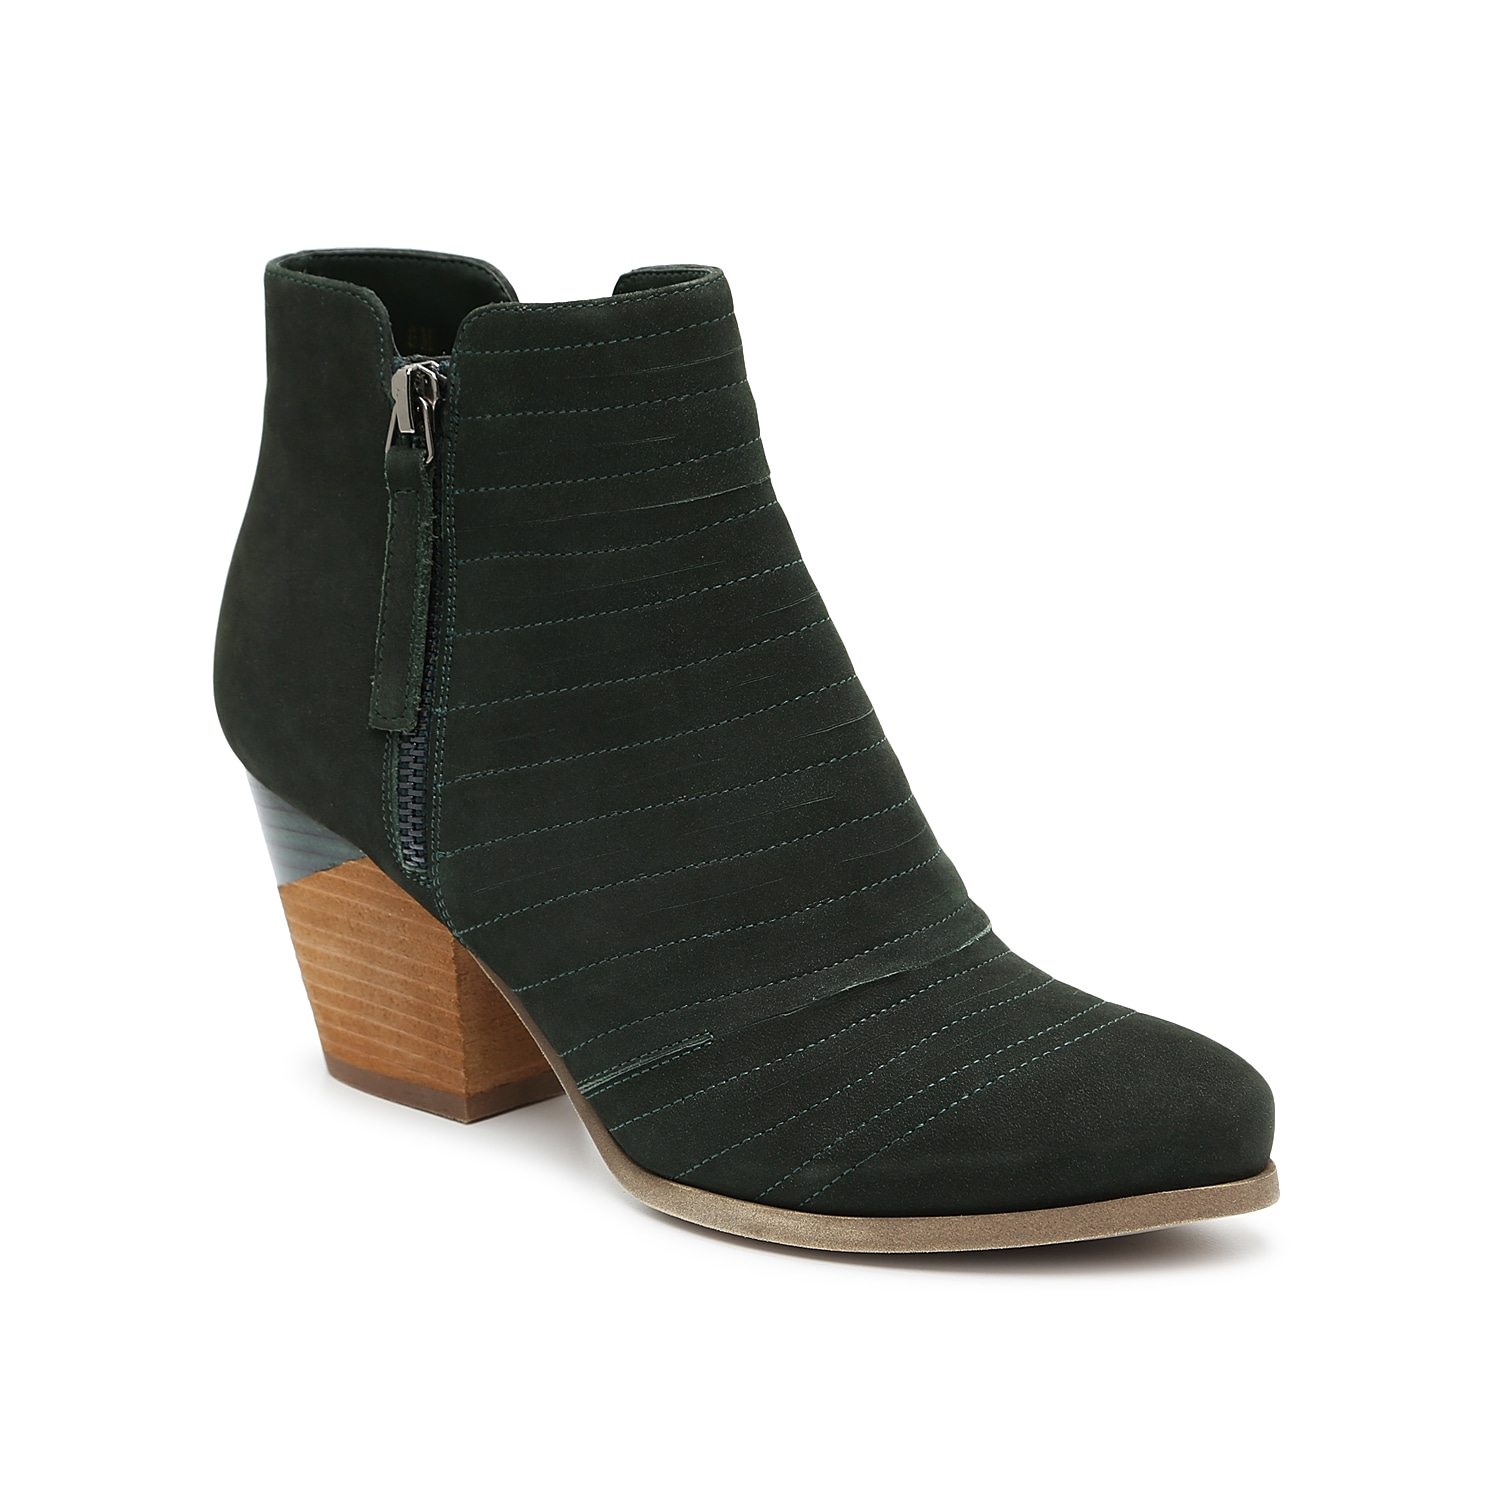 Precision cuts and contrast stitching accentuate the vamp of the Jeramy ankle booties from VANELi. A slanted block heel is split with two stacked styles with half-finished and half-raw texturing. Click here for Boot Measuring Guide.